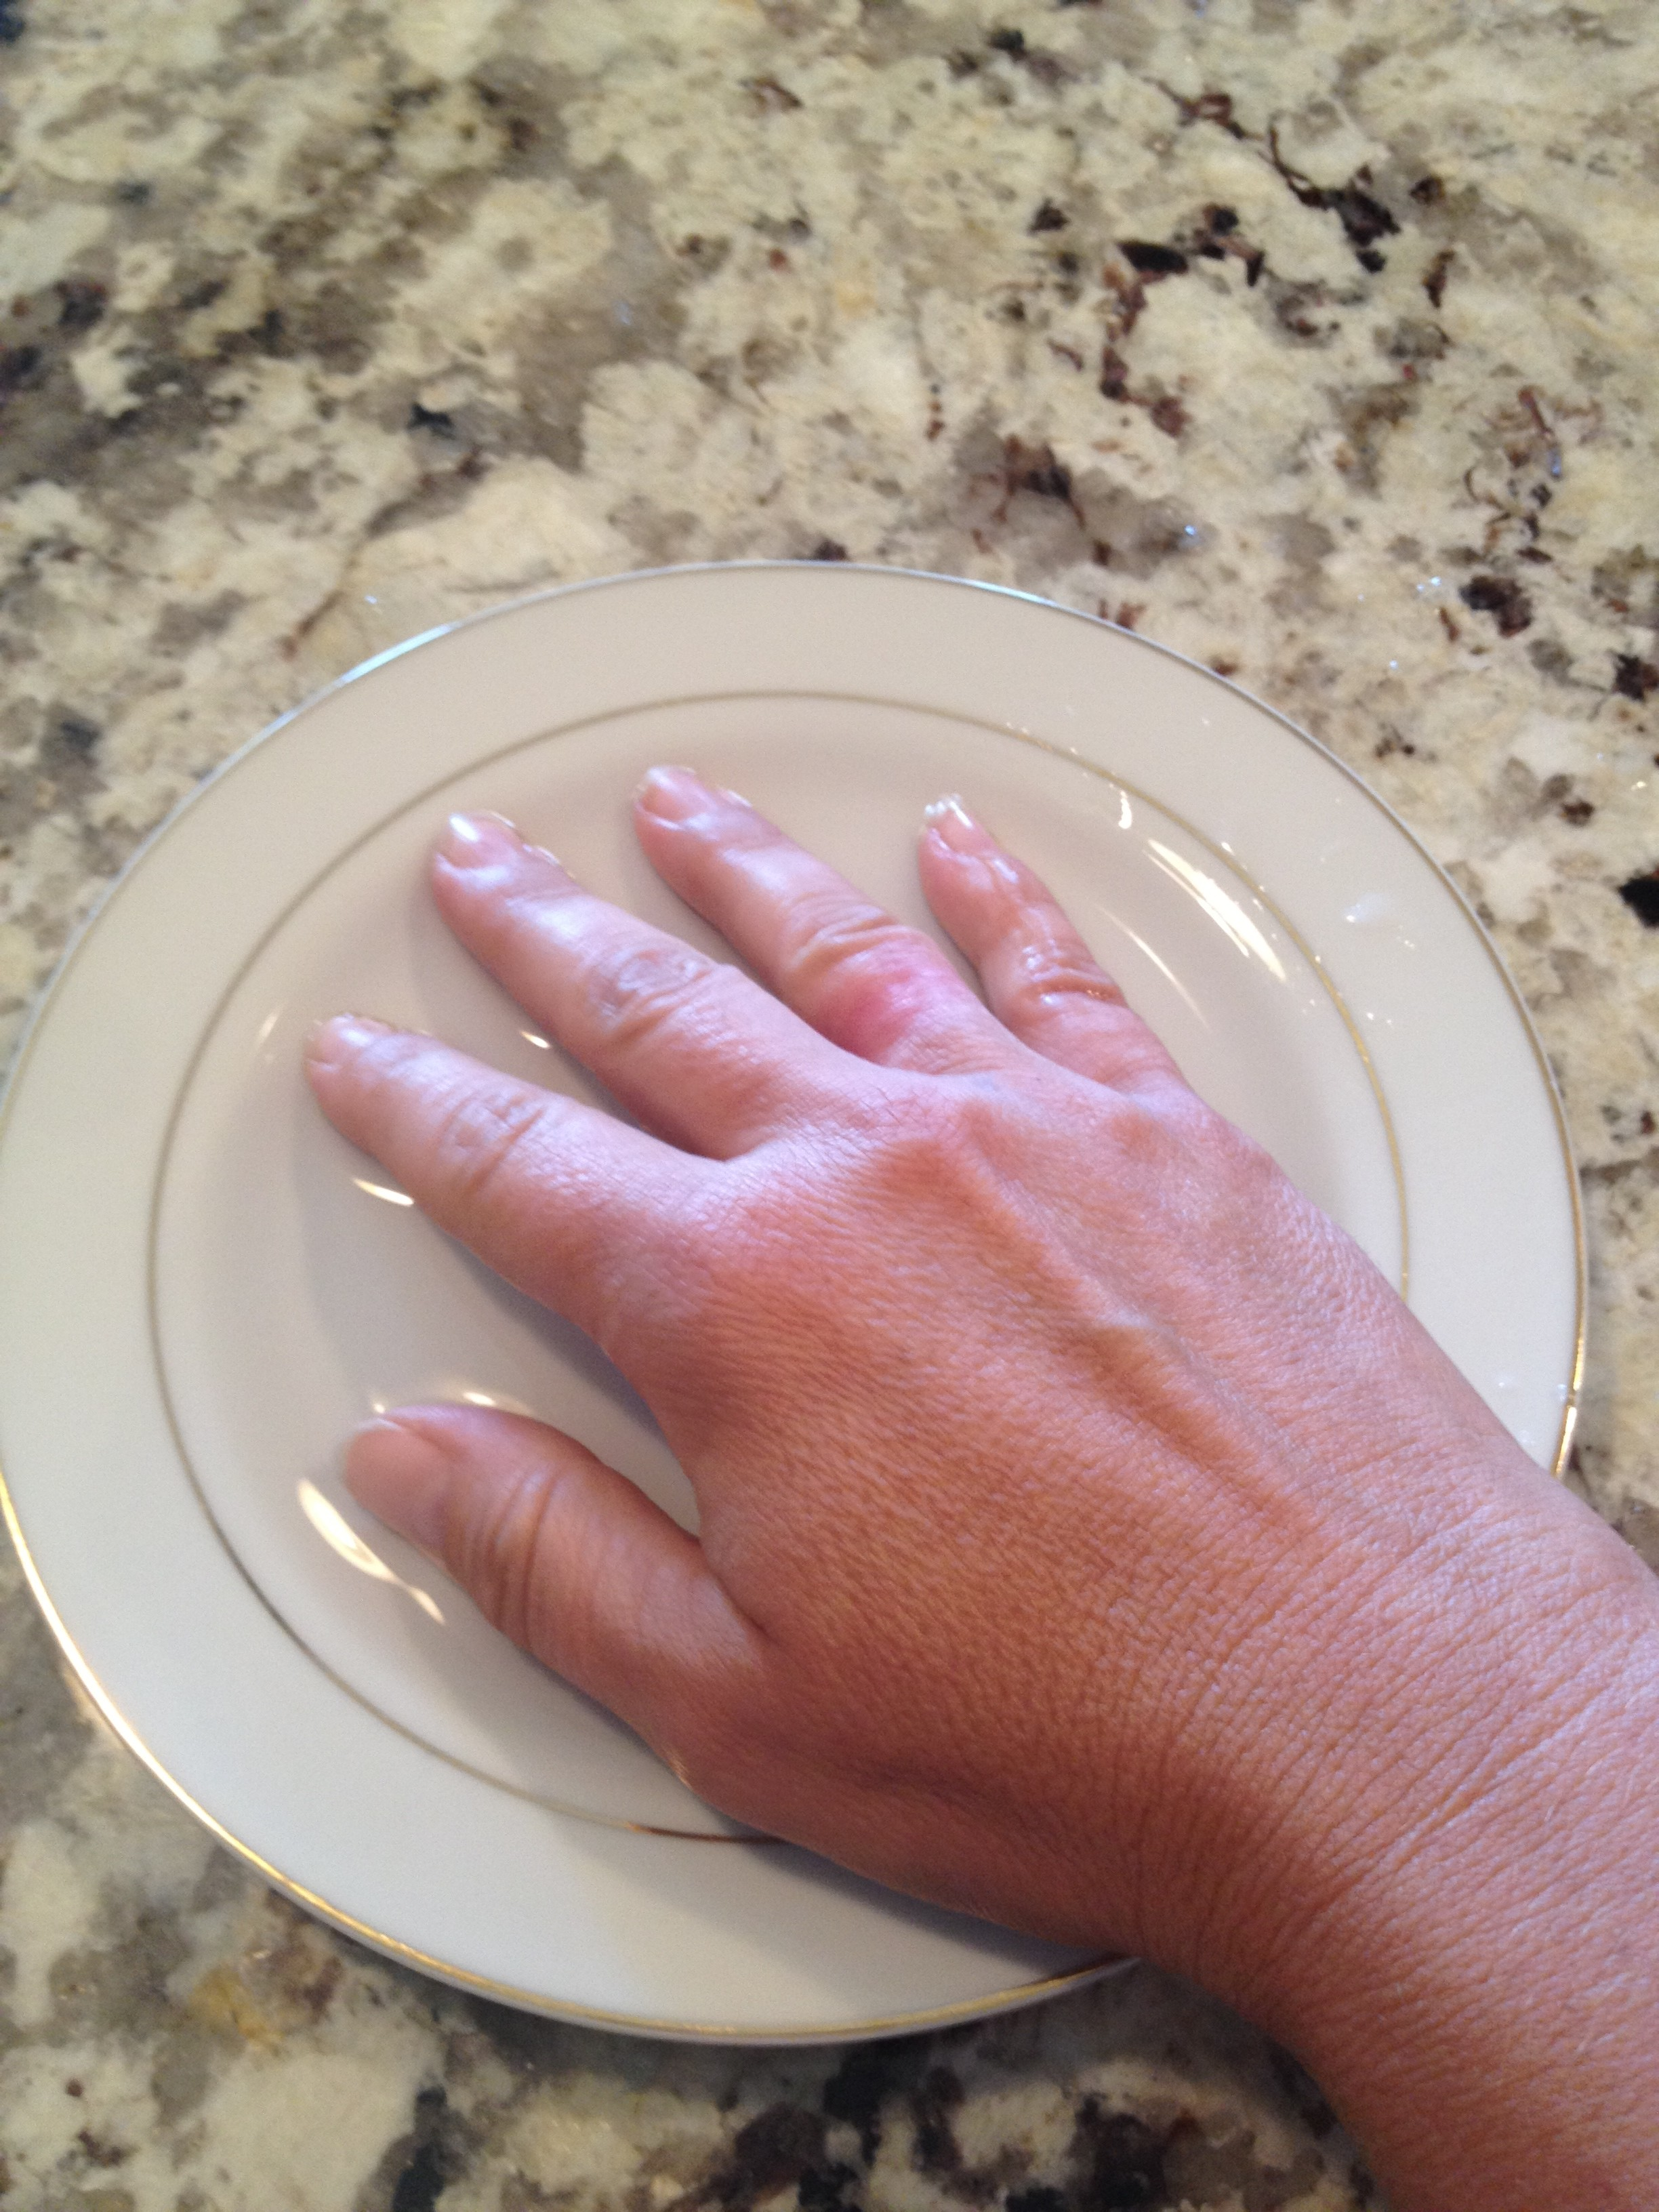 How to make your hands bigger